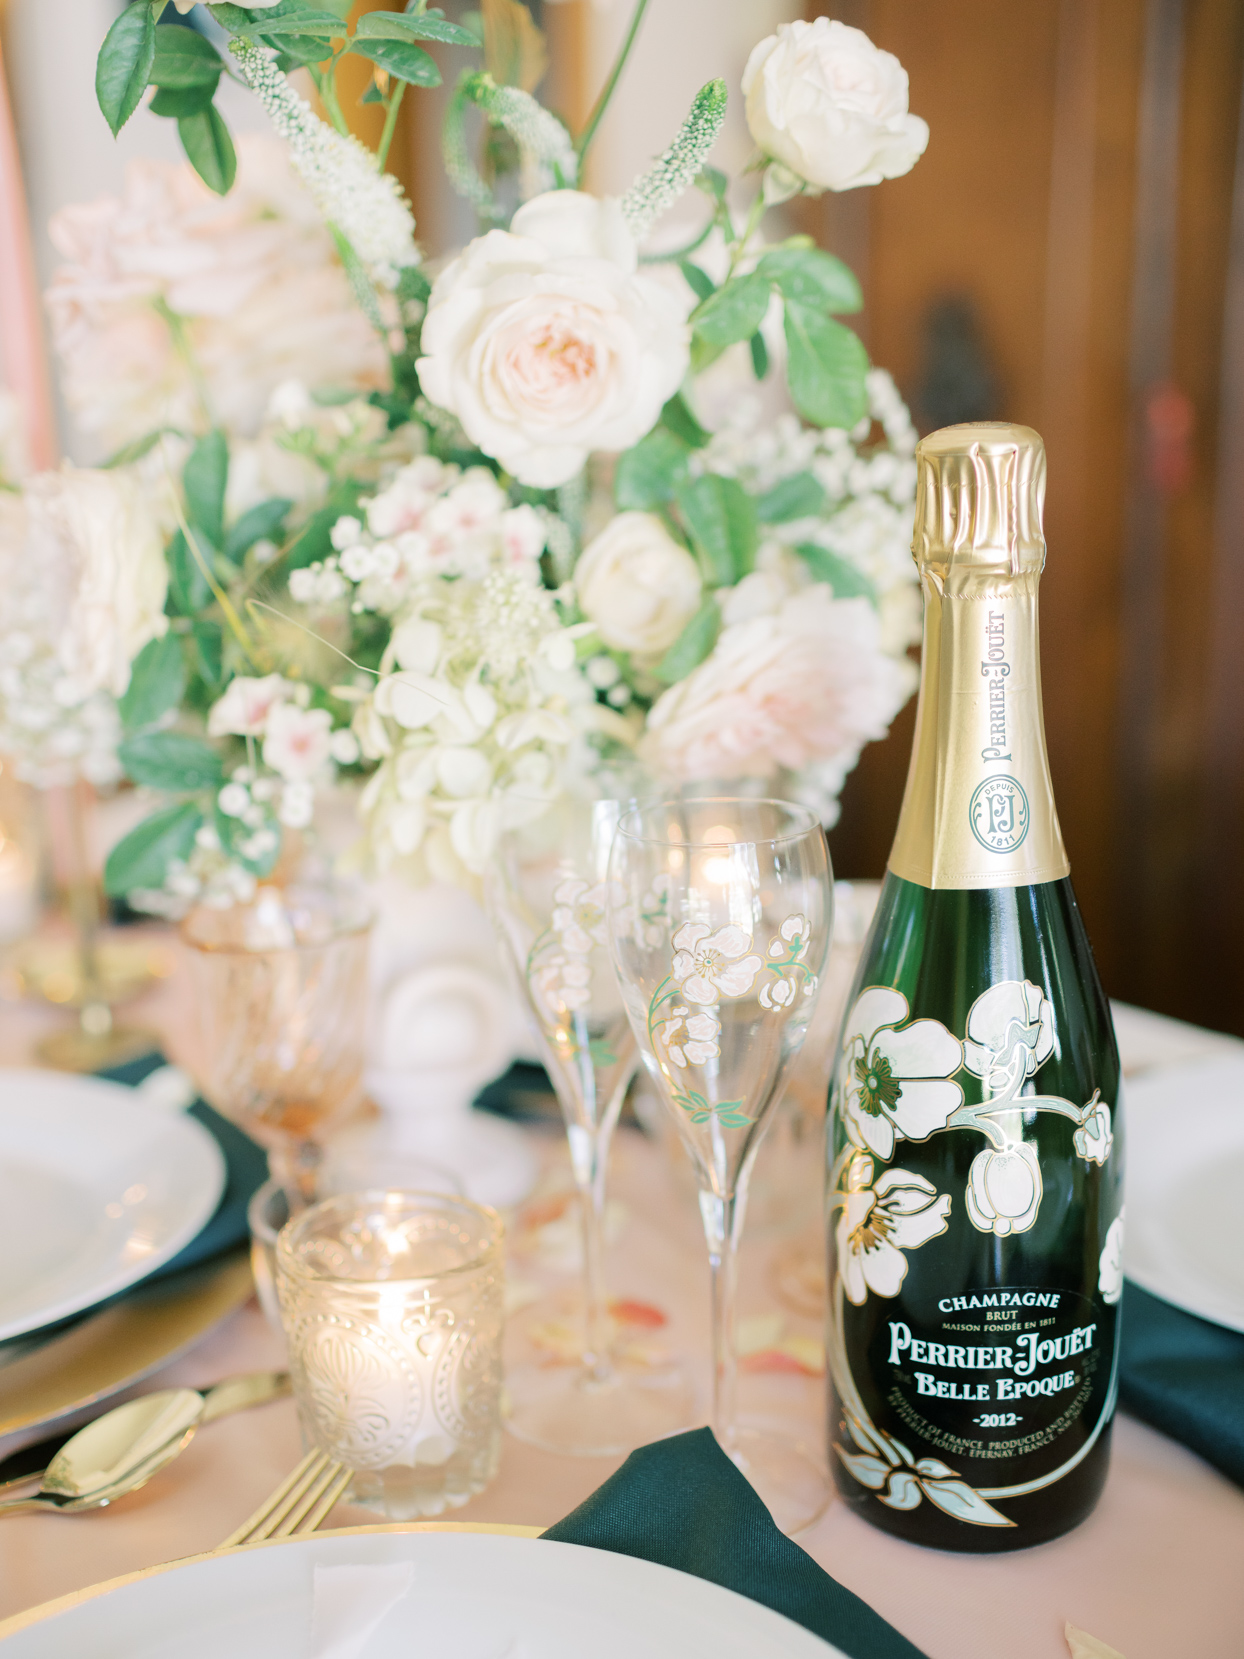 wedding champagne bottle and flowered glasses